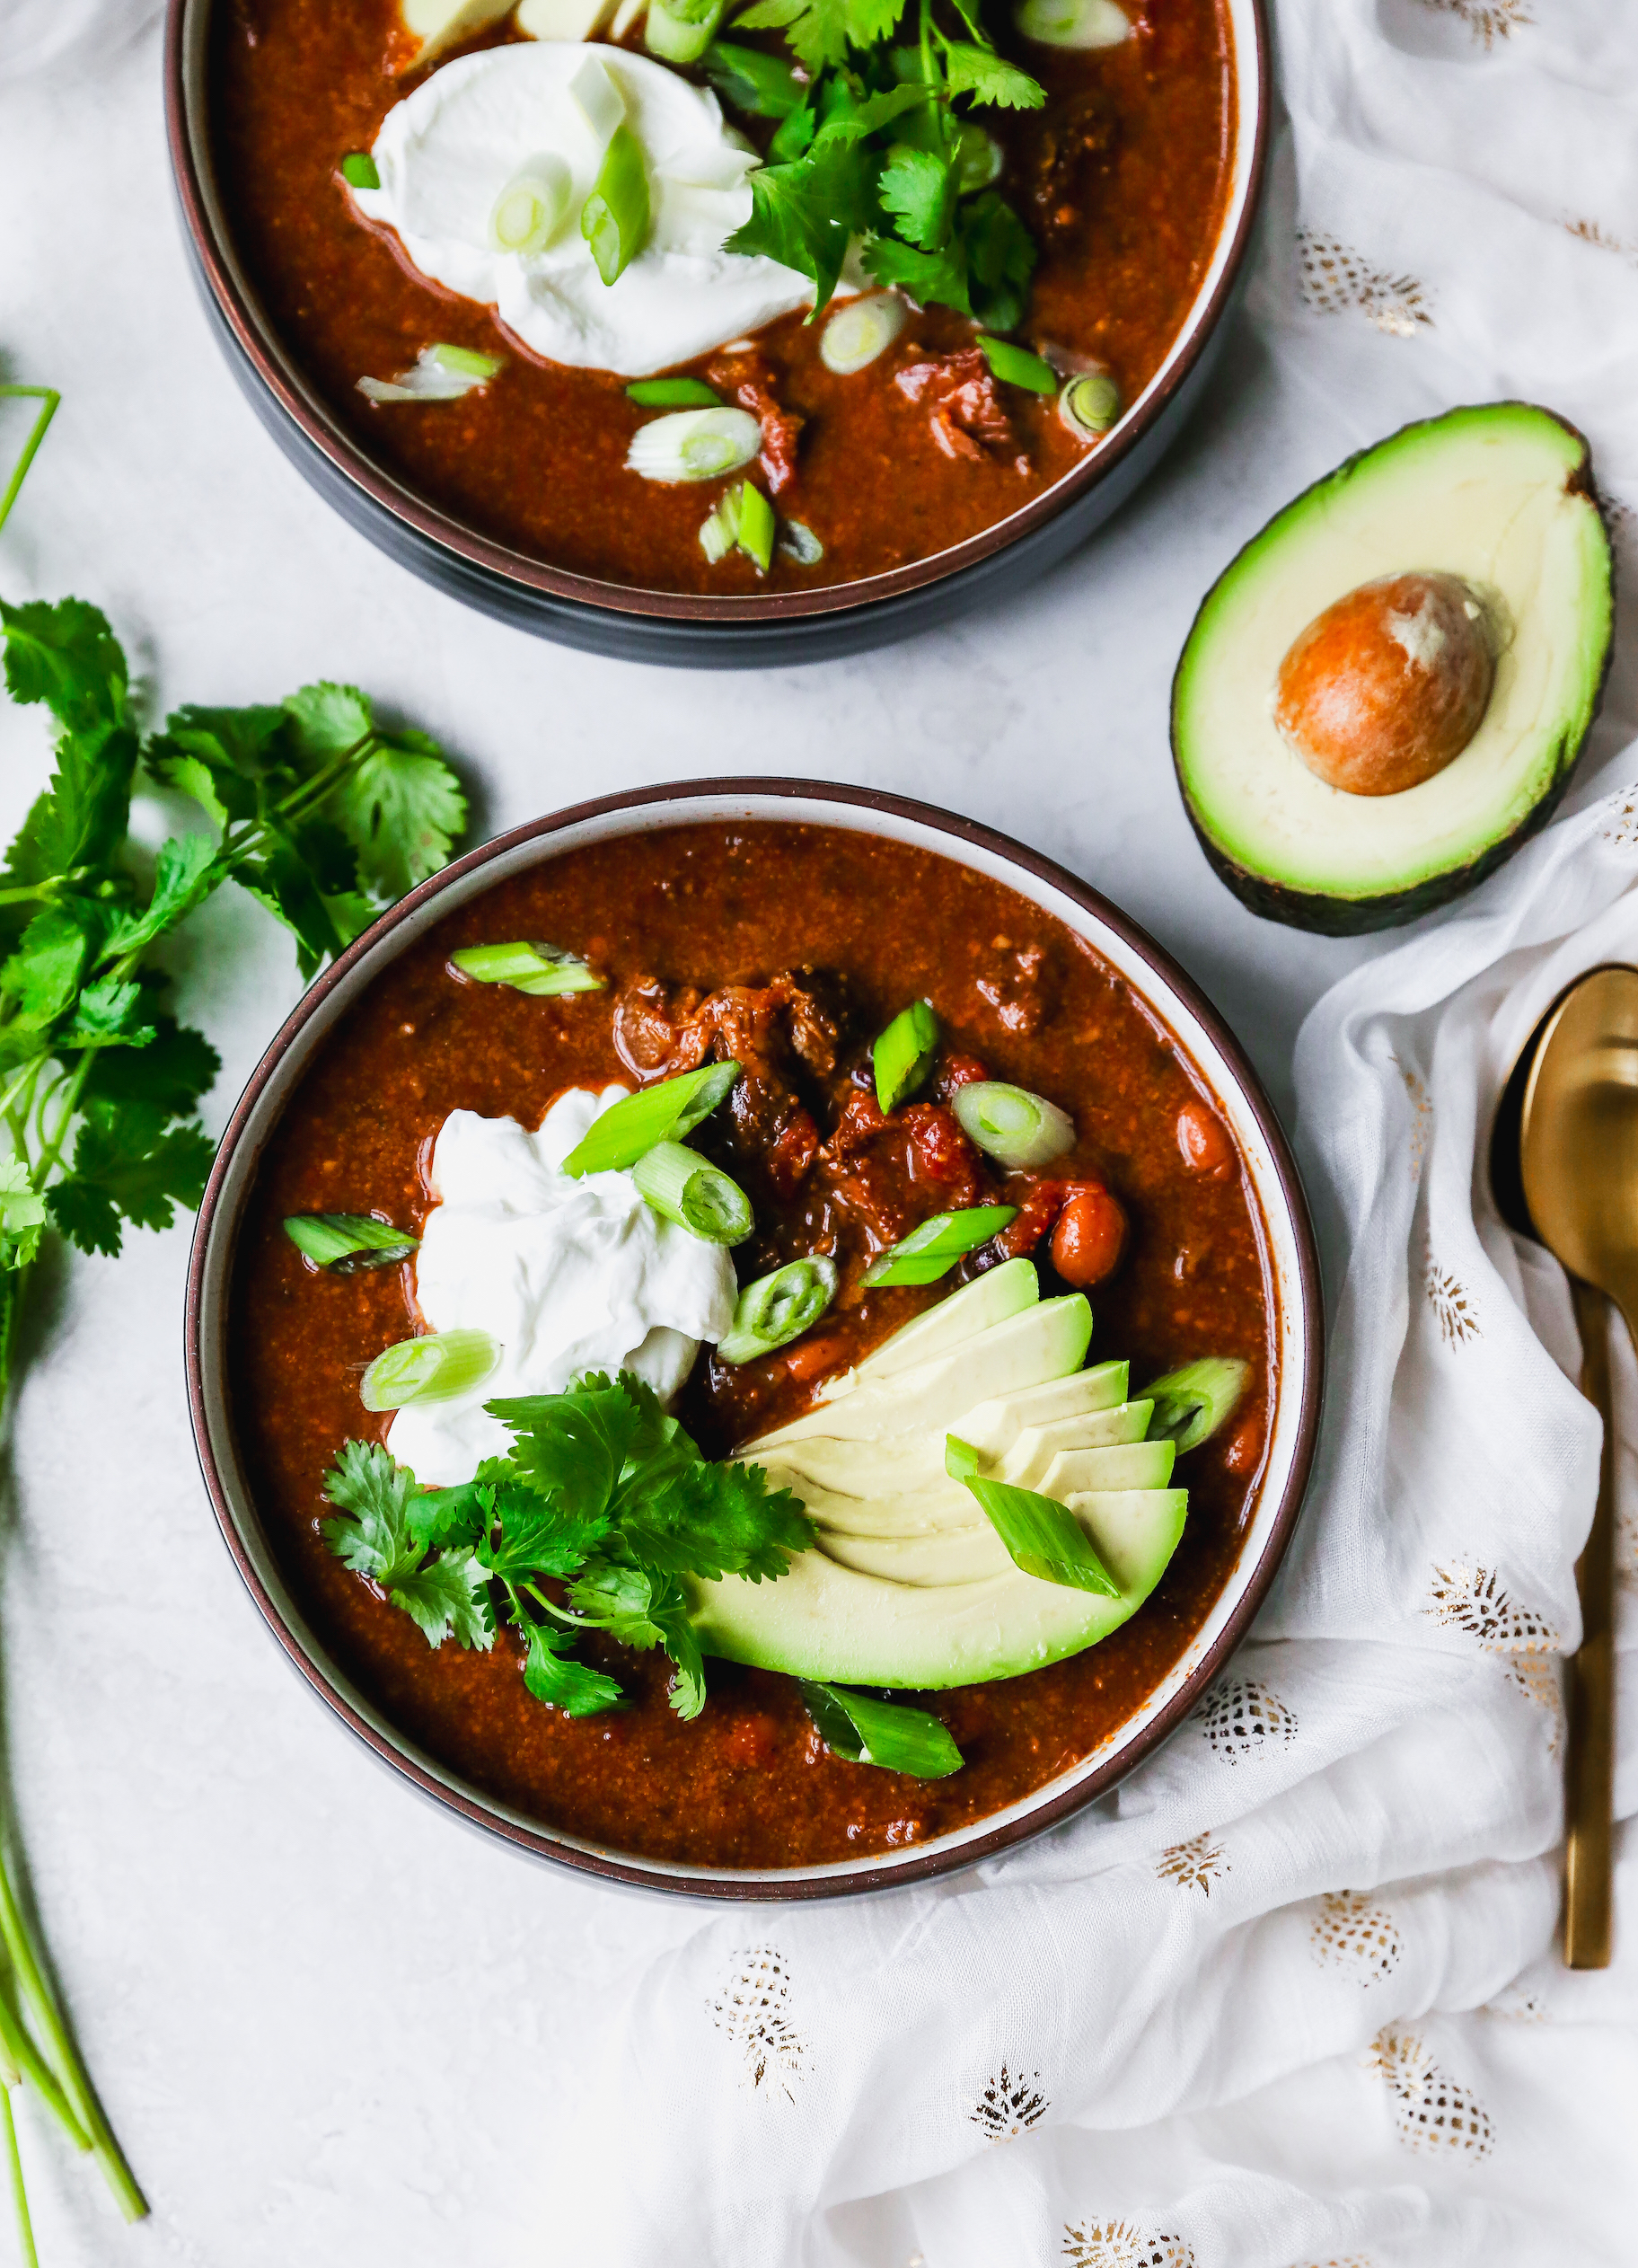 Slow-Cooker Ancho Chile & Chocolate Beef Chili